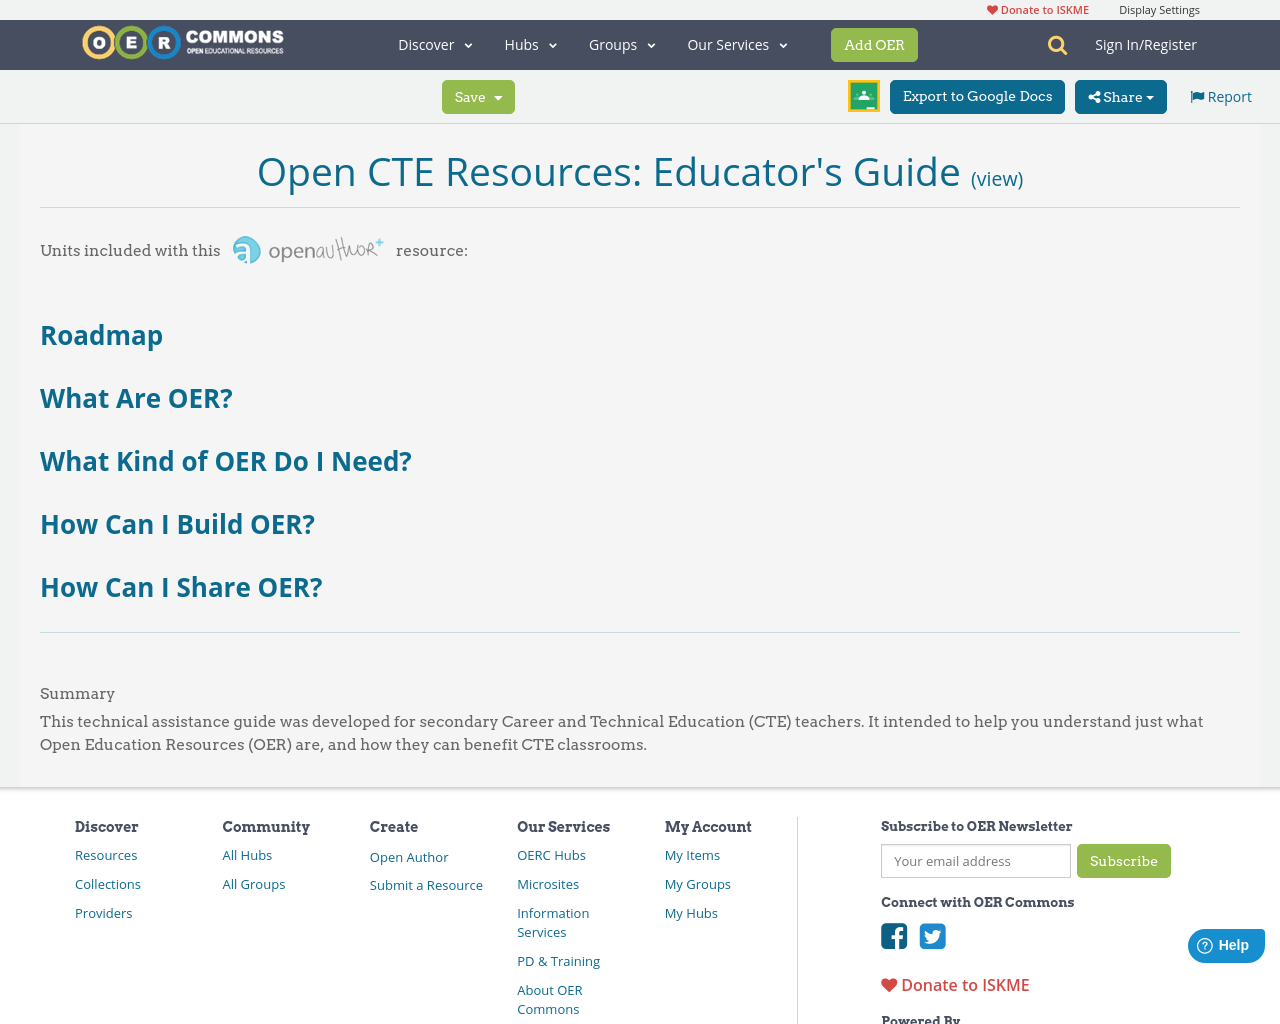 Open CTE Resources: Educator's Guide   What Are OER?   OER Commons